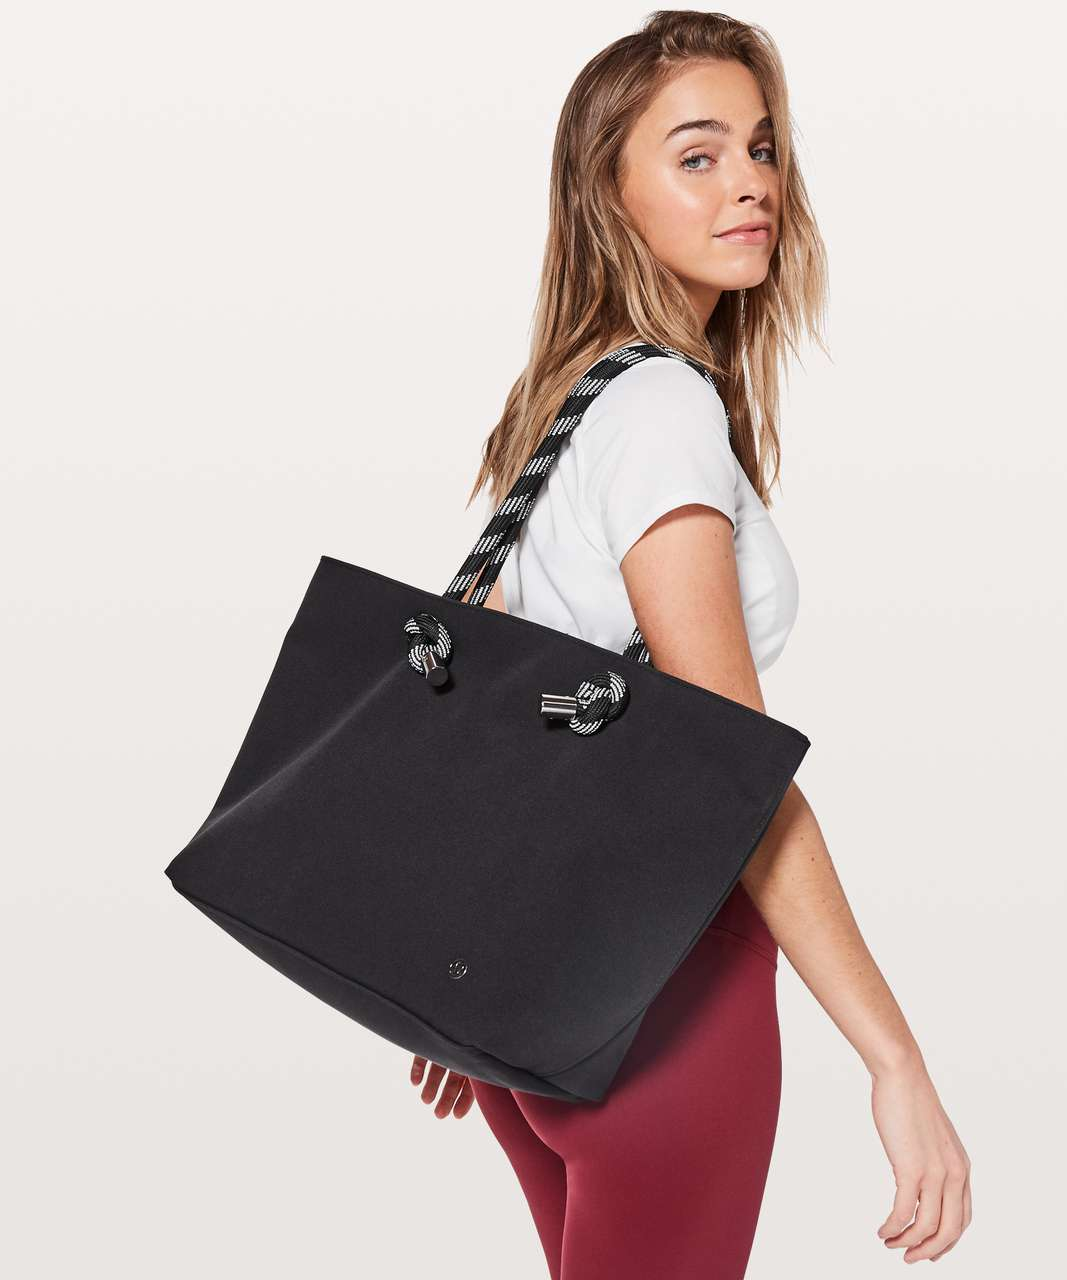 Lululemon Harbour Tote *23L - Black